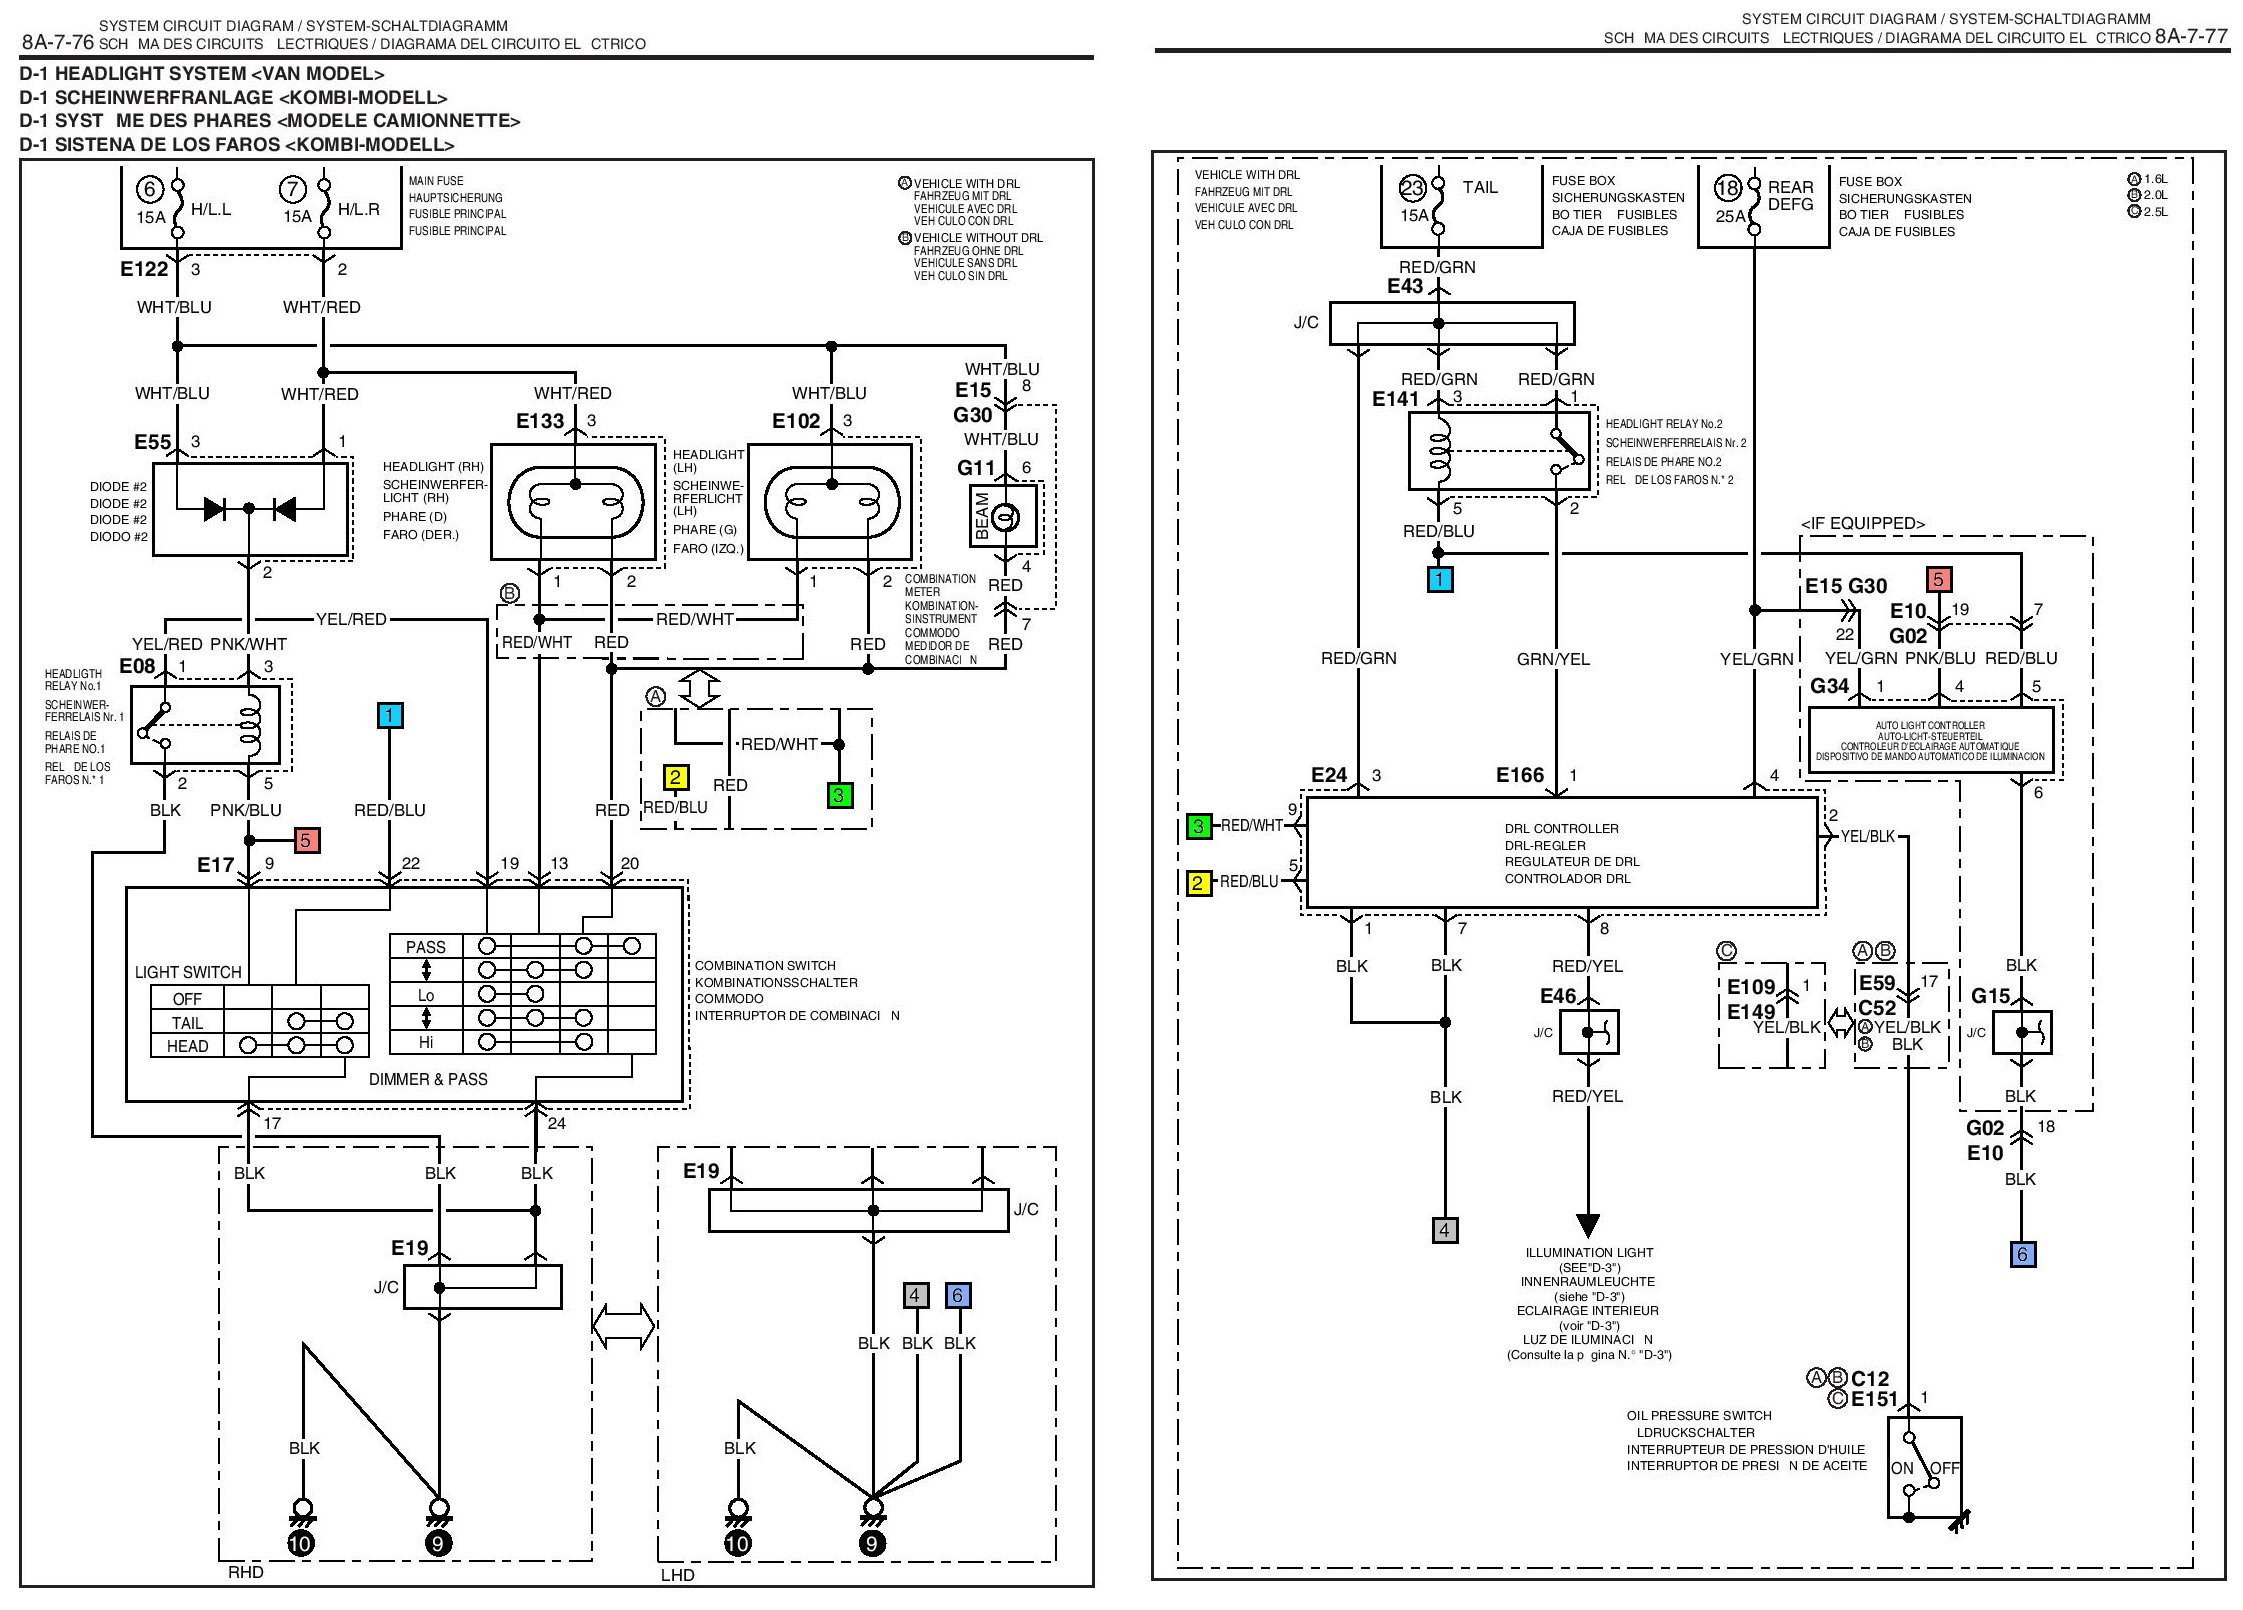 Suzuki Xl7 Engine Diagram Wiring 2006 Diagramsfuse Box 2004 Library 2007 Forenza